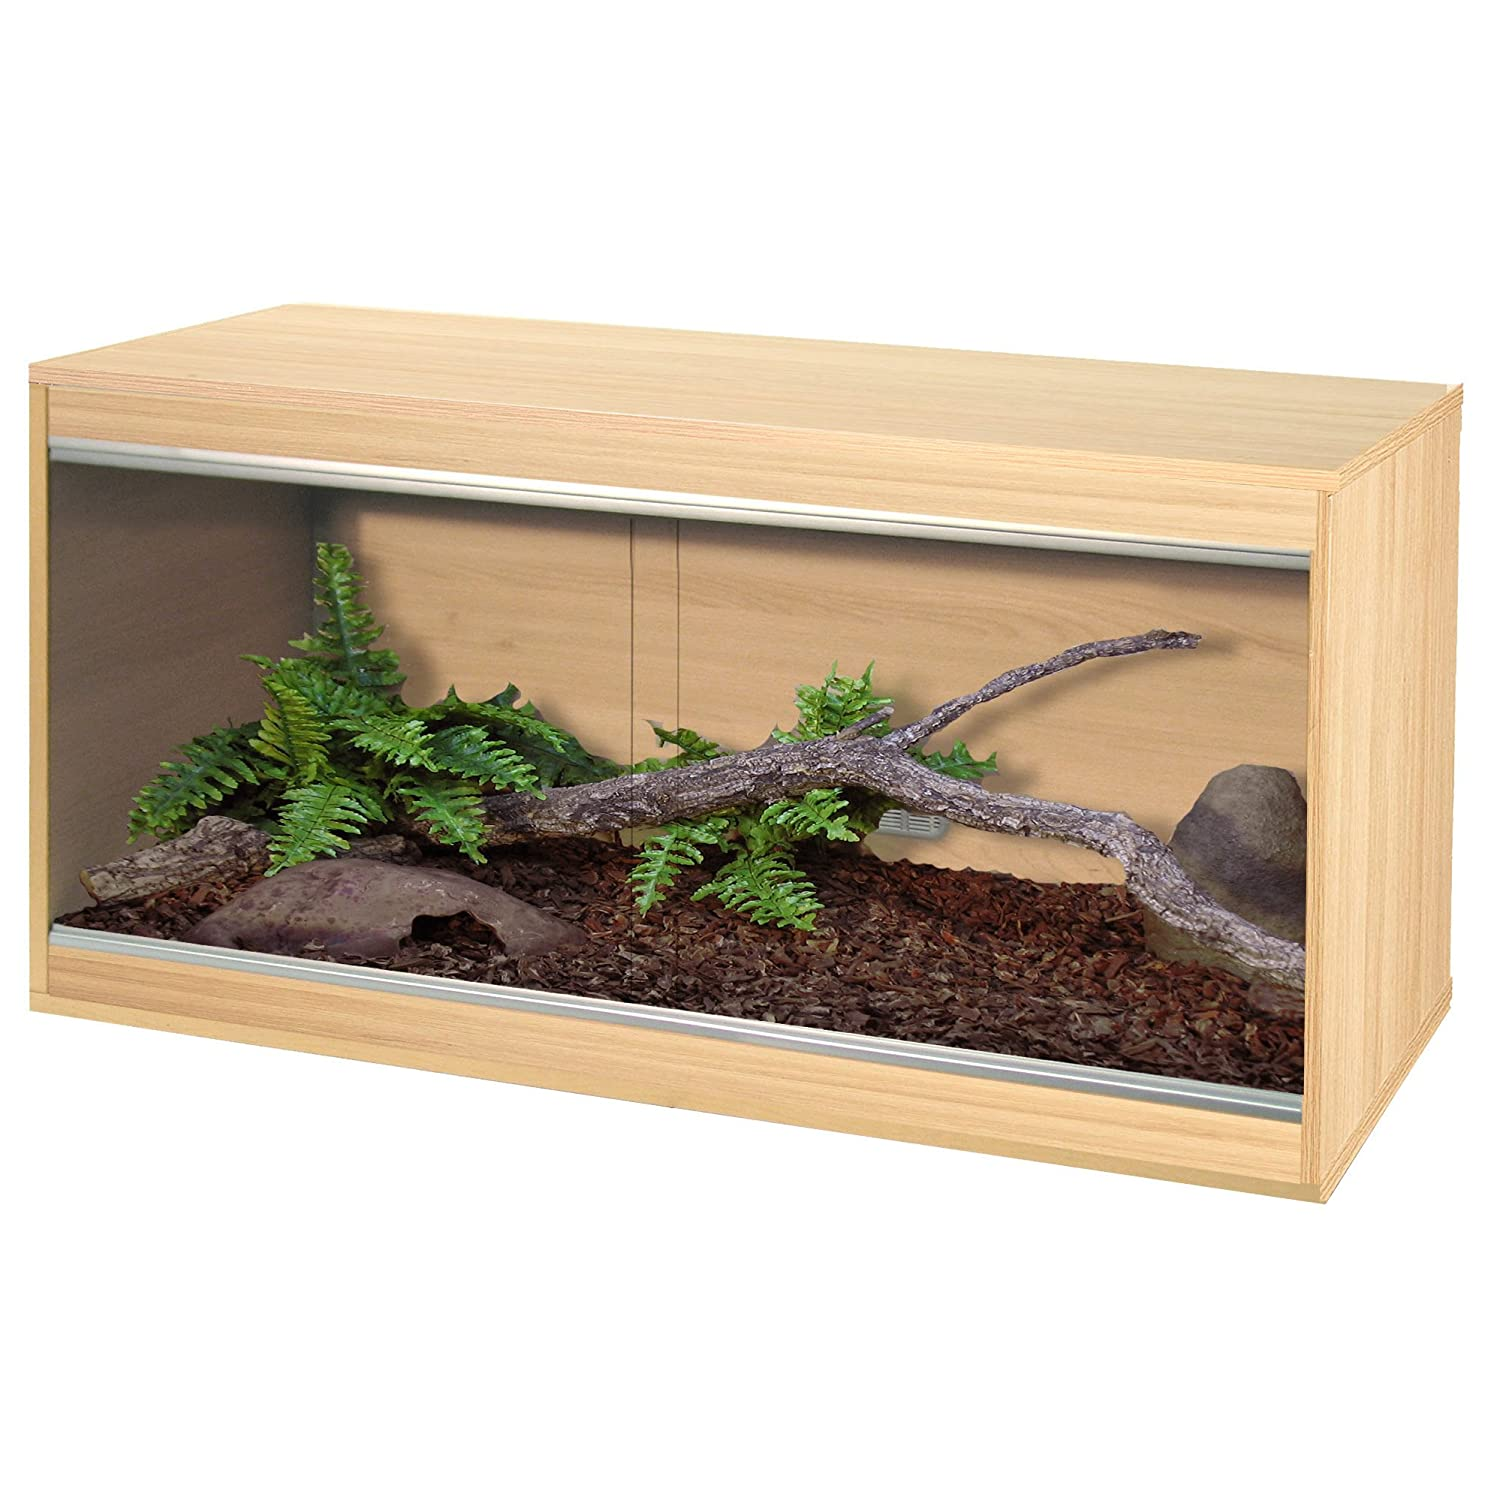 Vivexotic Repti-Home Vivarium Medium - Oak